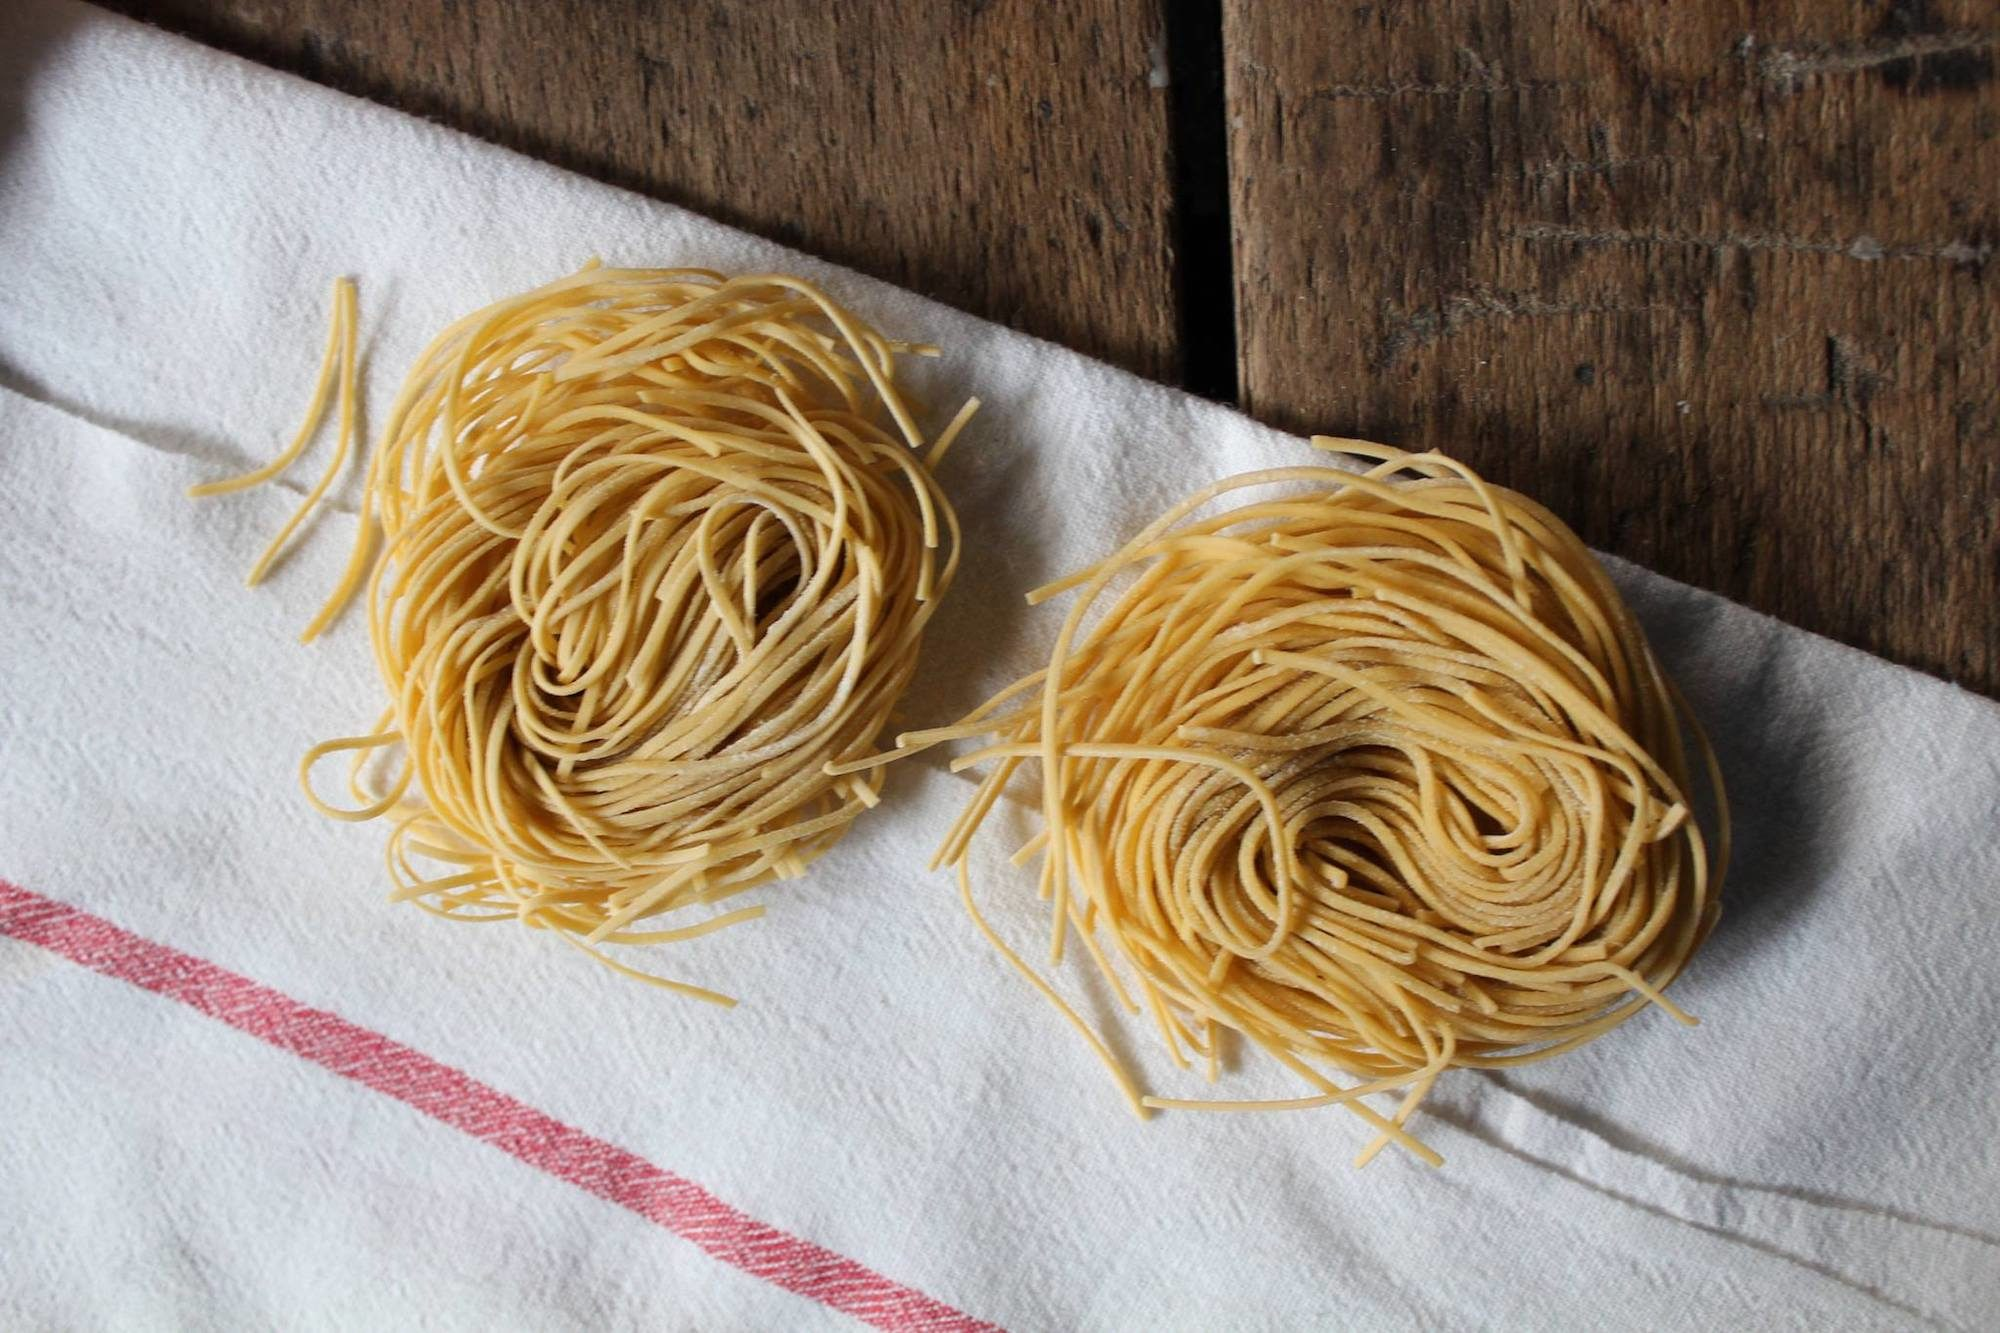 For some of the best homemade pasta in Paris, head to Pastifico in the Marais.